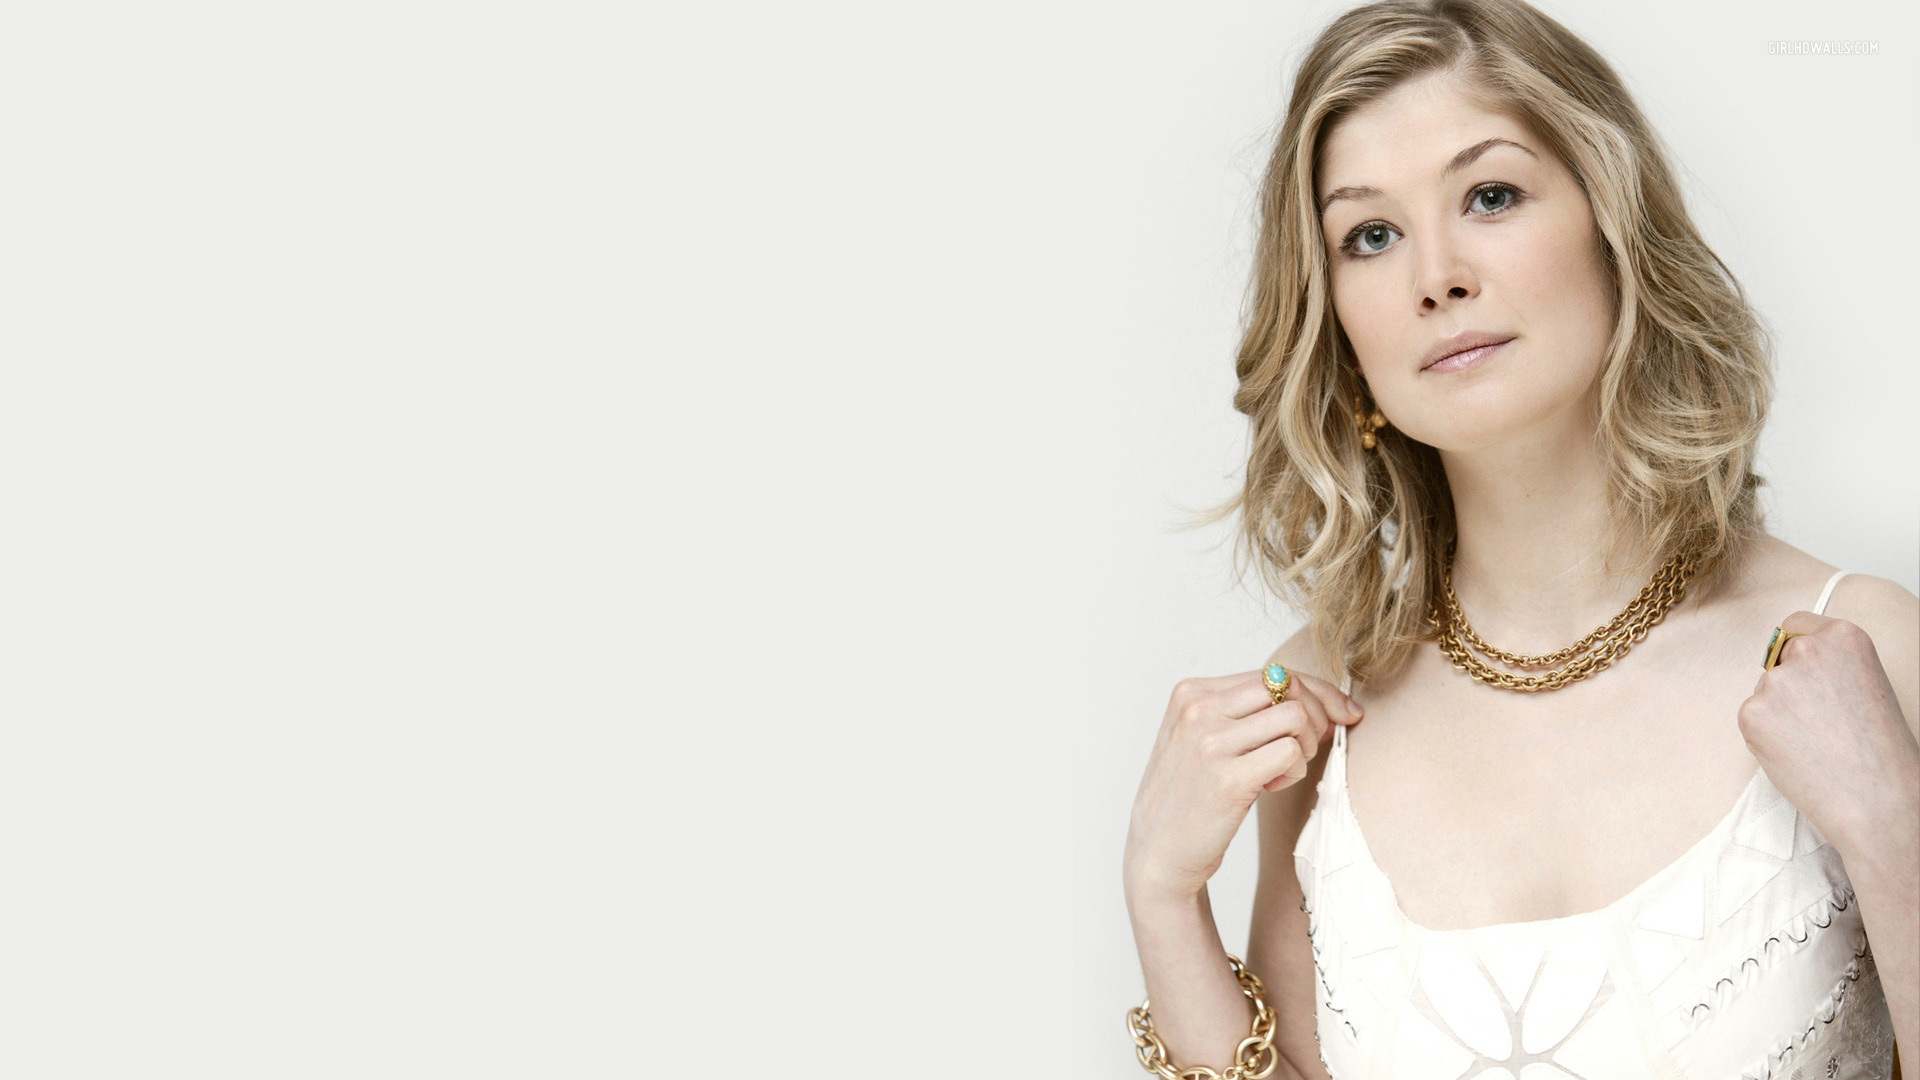 1920x1080 - Rosamund Pike Wallpapers 29